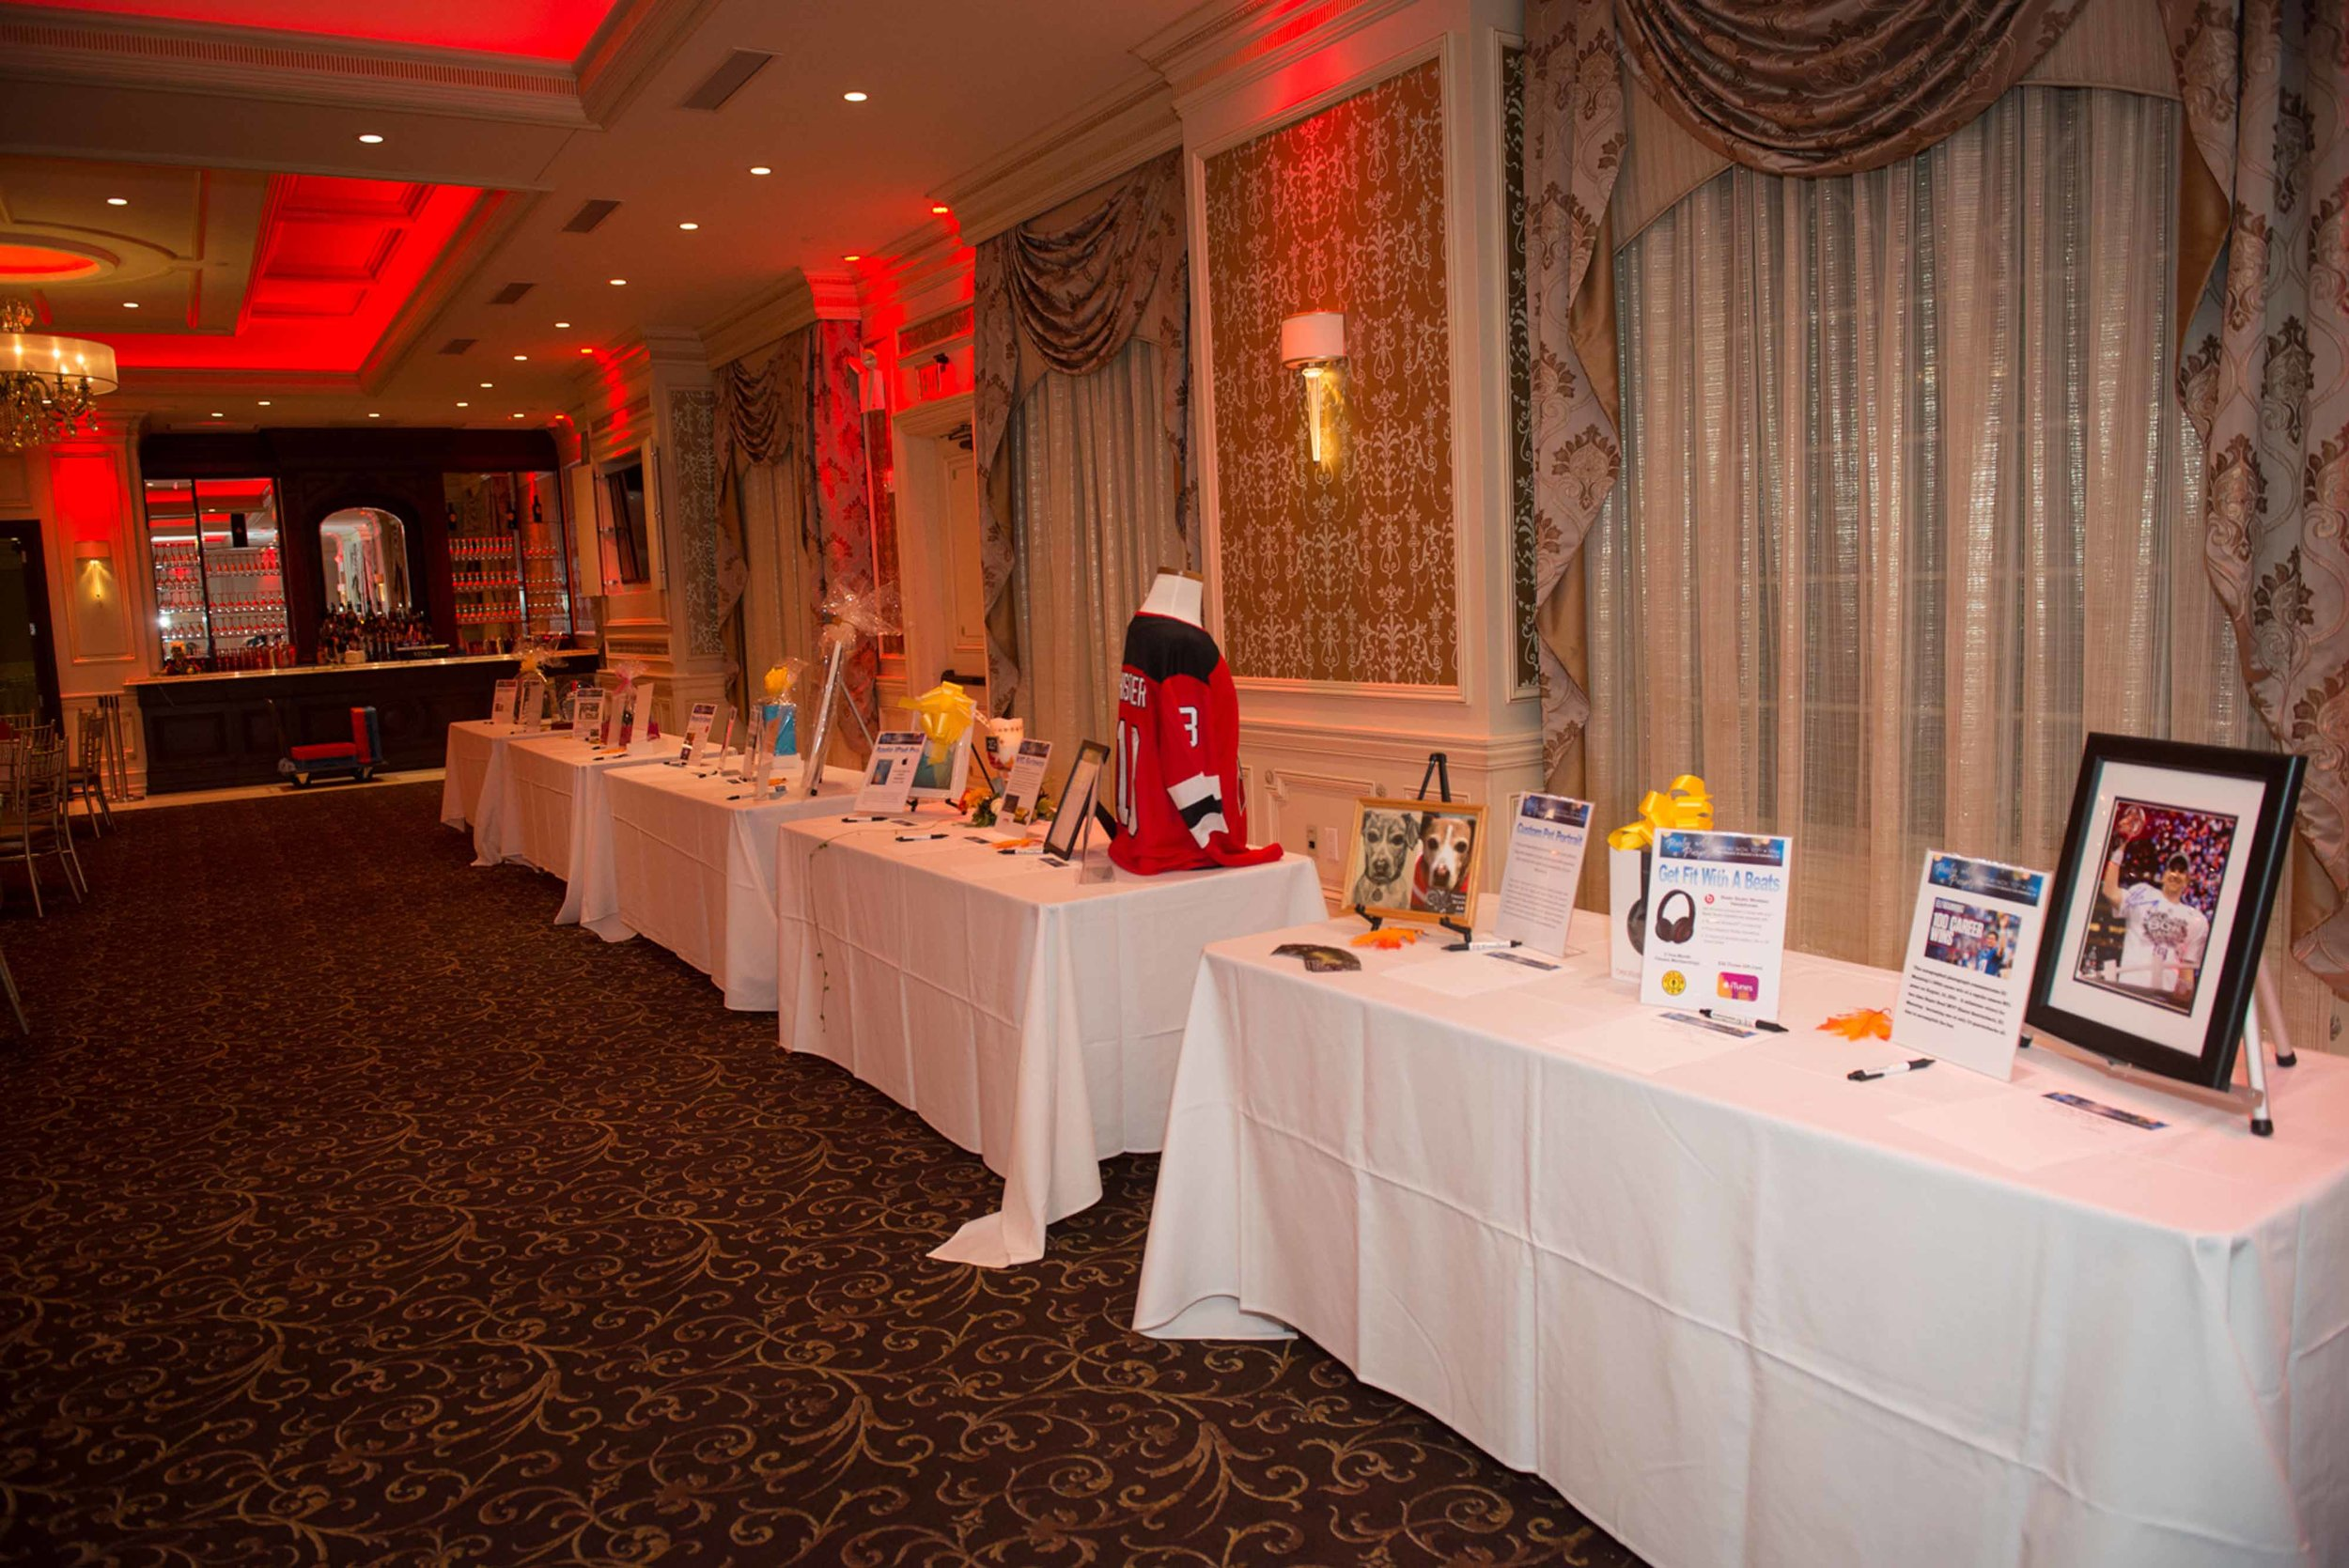 2017-11-10 The EPIC School - Party with a Purpose - Biagios on the Terrace - Paramus NJ-13.jpg